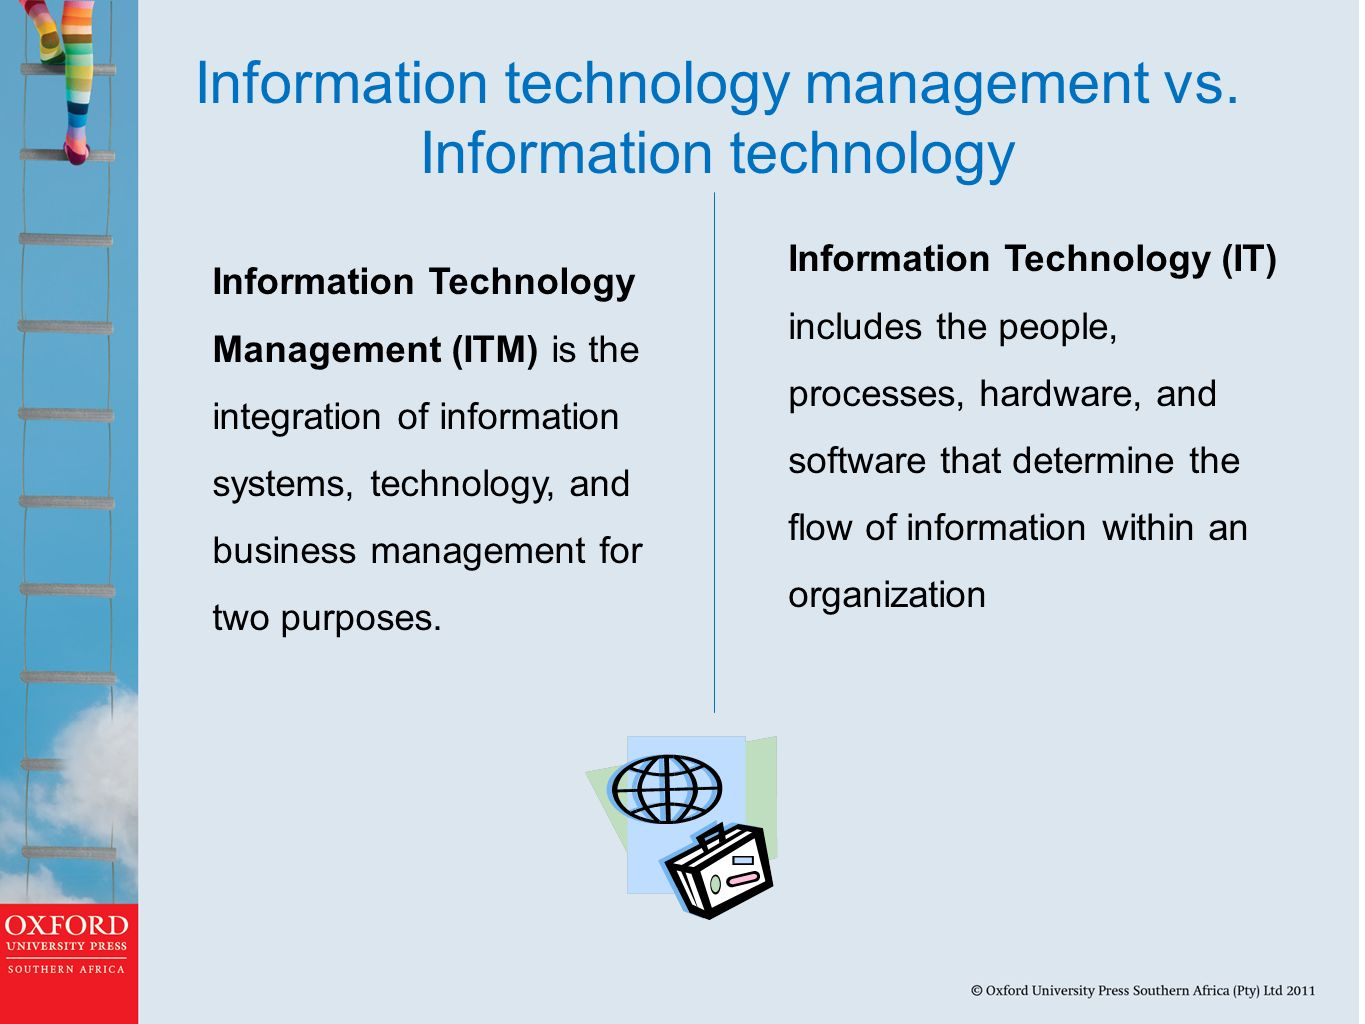 information technology vs information systems case Learn the difference between information systems and information technology from a regionally accredited university get our program guide if you are ready to learn more about our programs, get started by downloading our program guide now  information systems vs information technology.